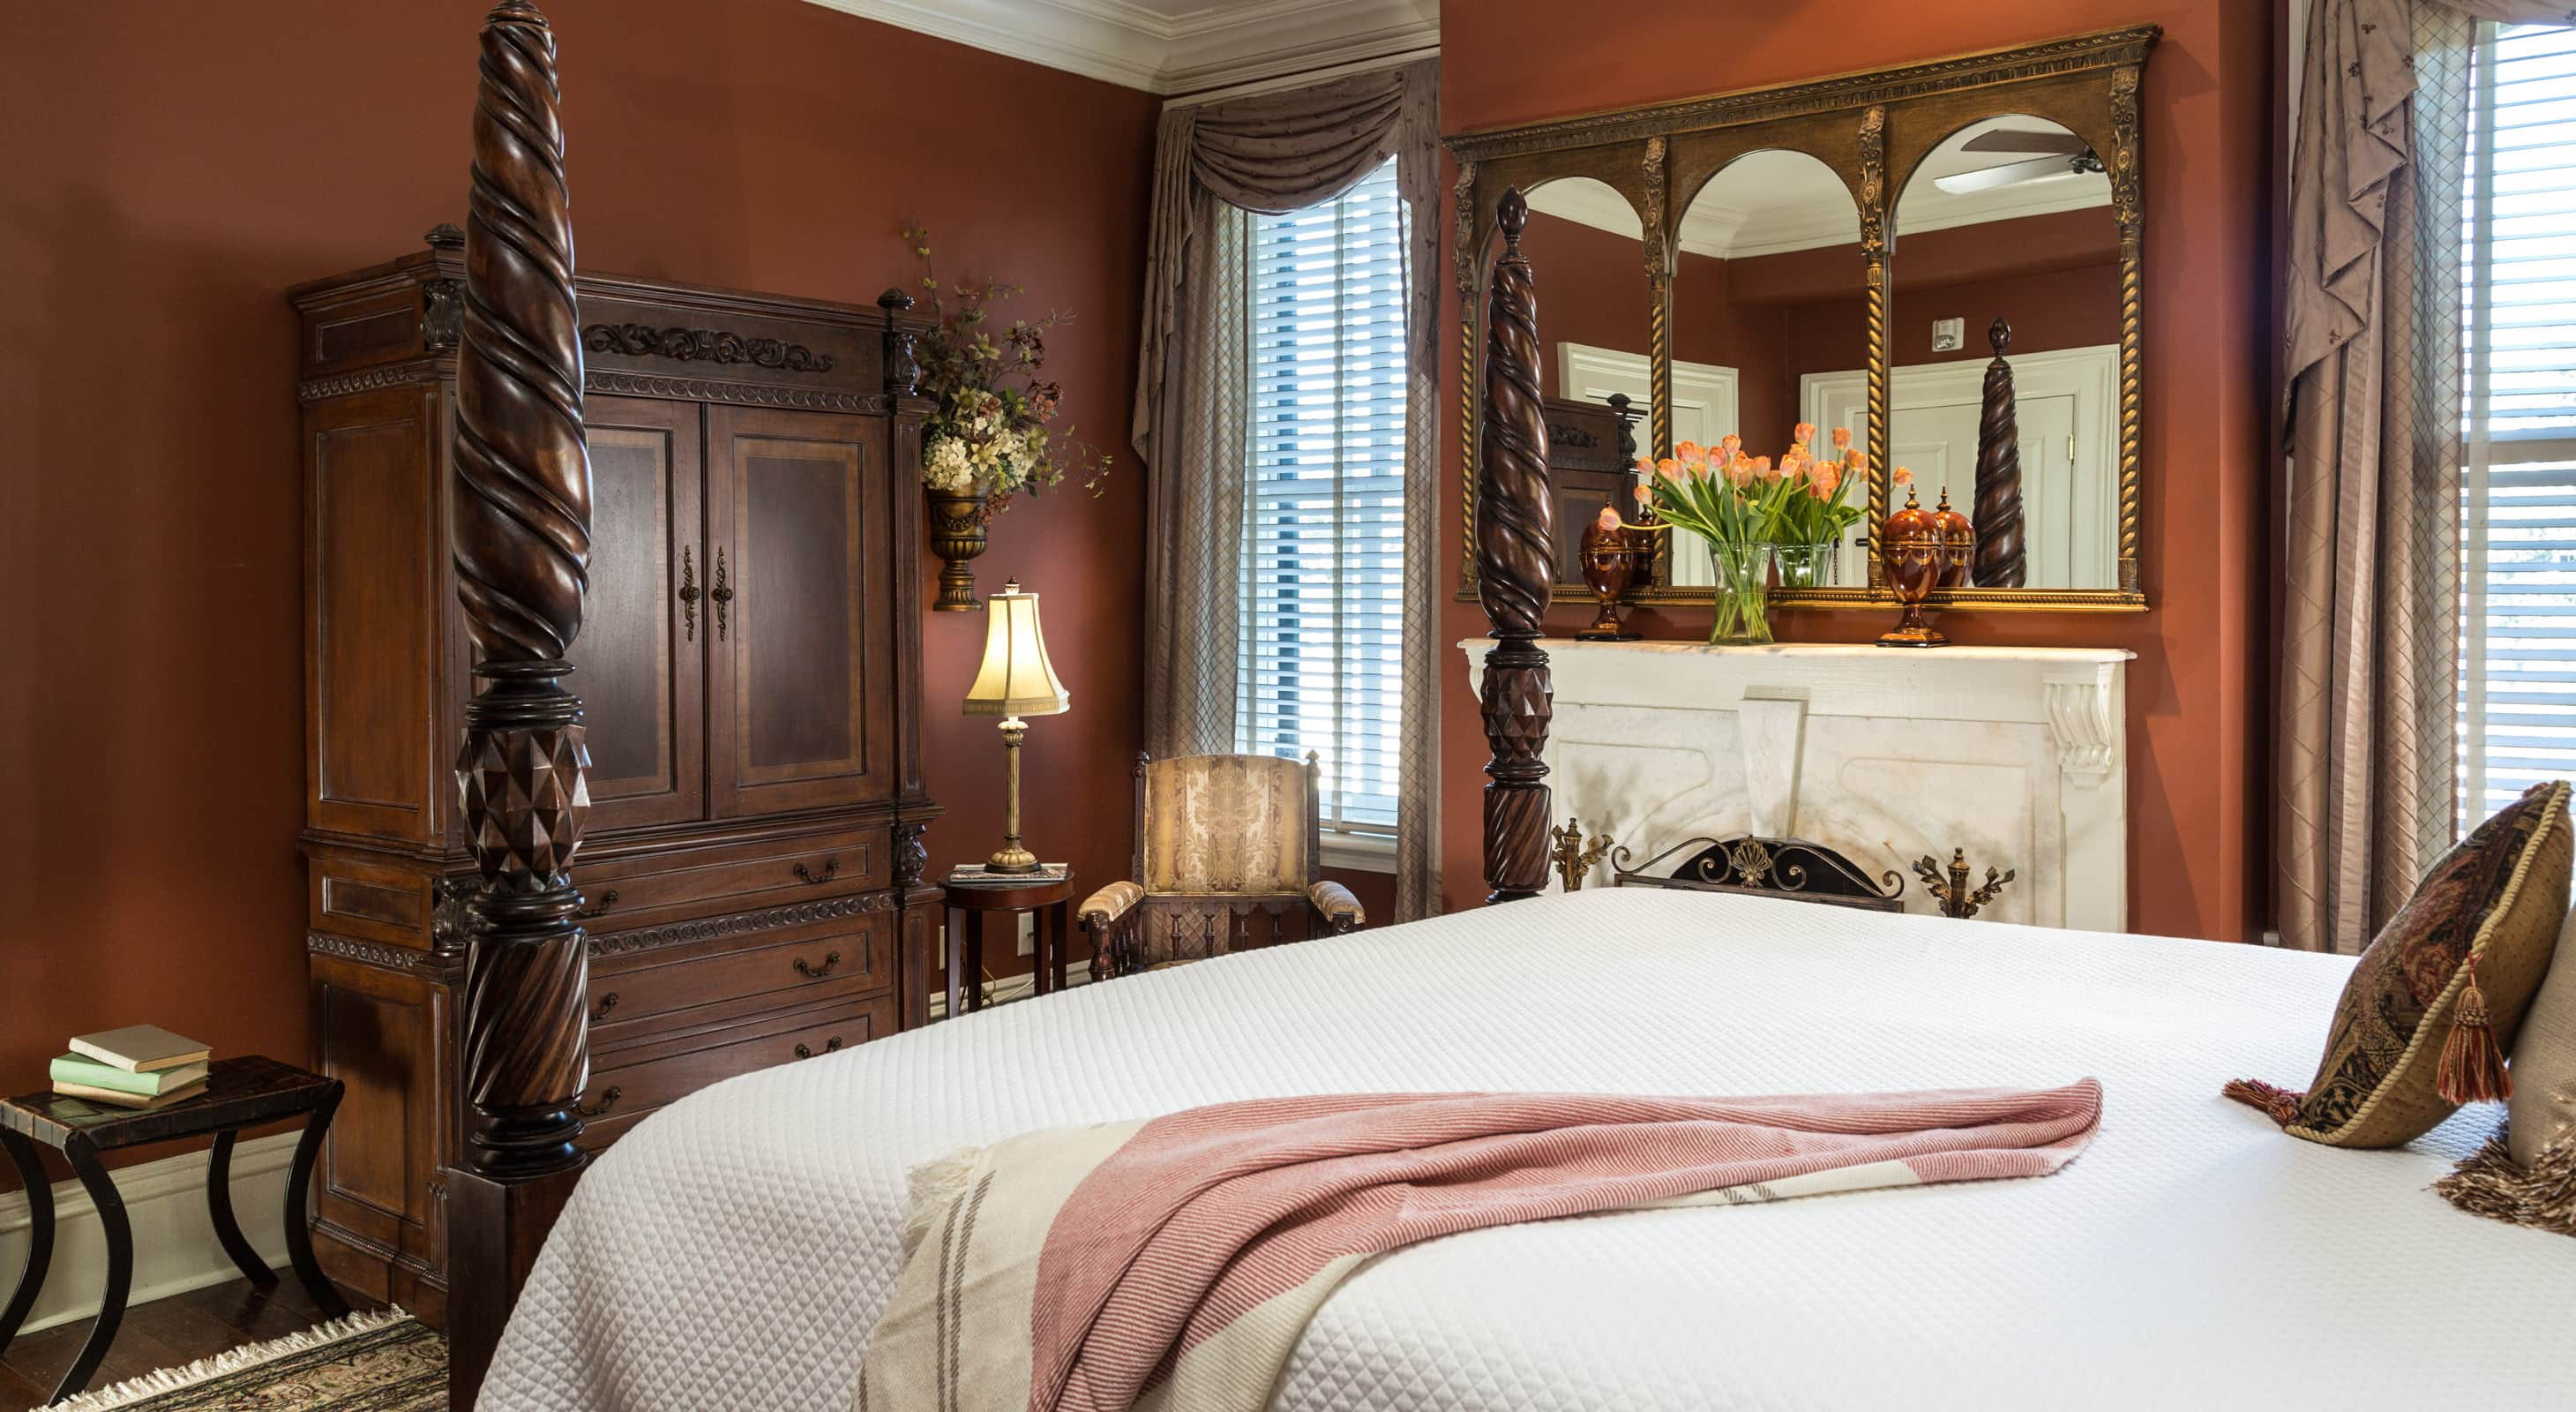 The end of a a four poster king bed with a fireplace and mirror